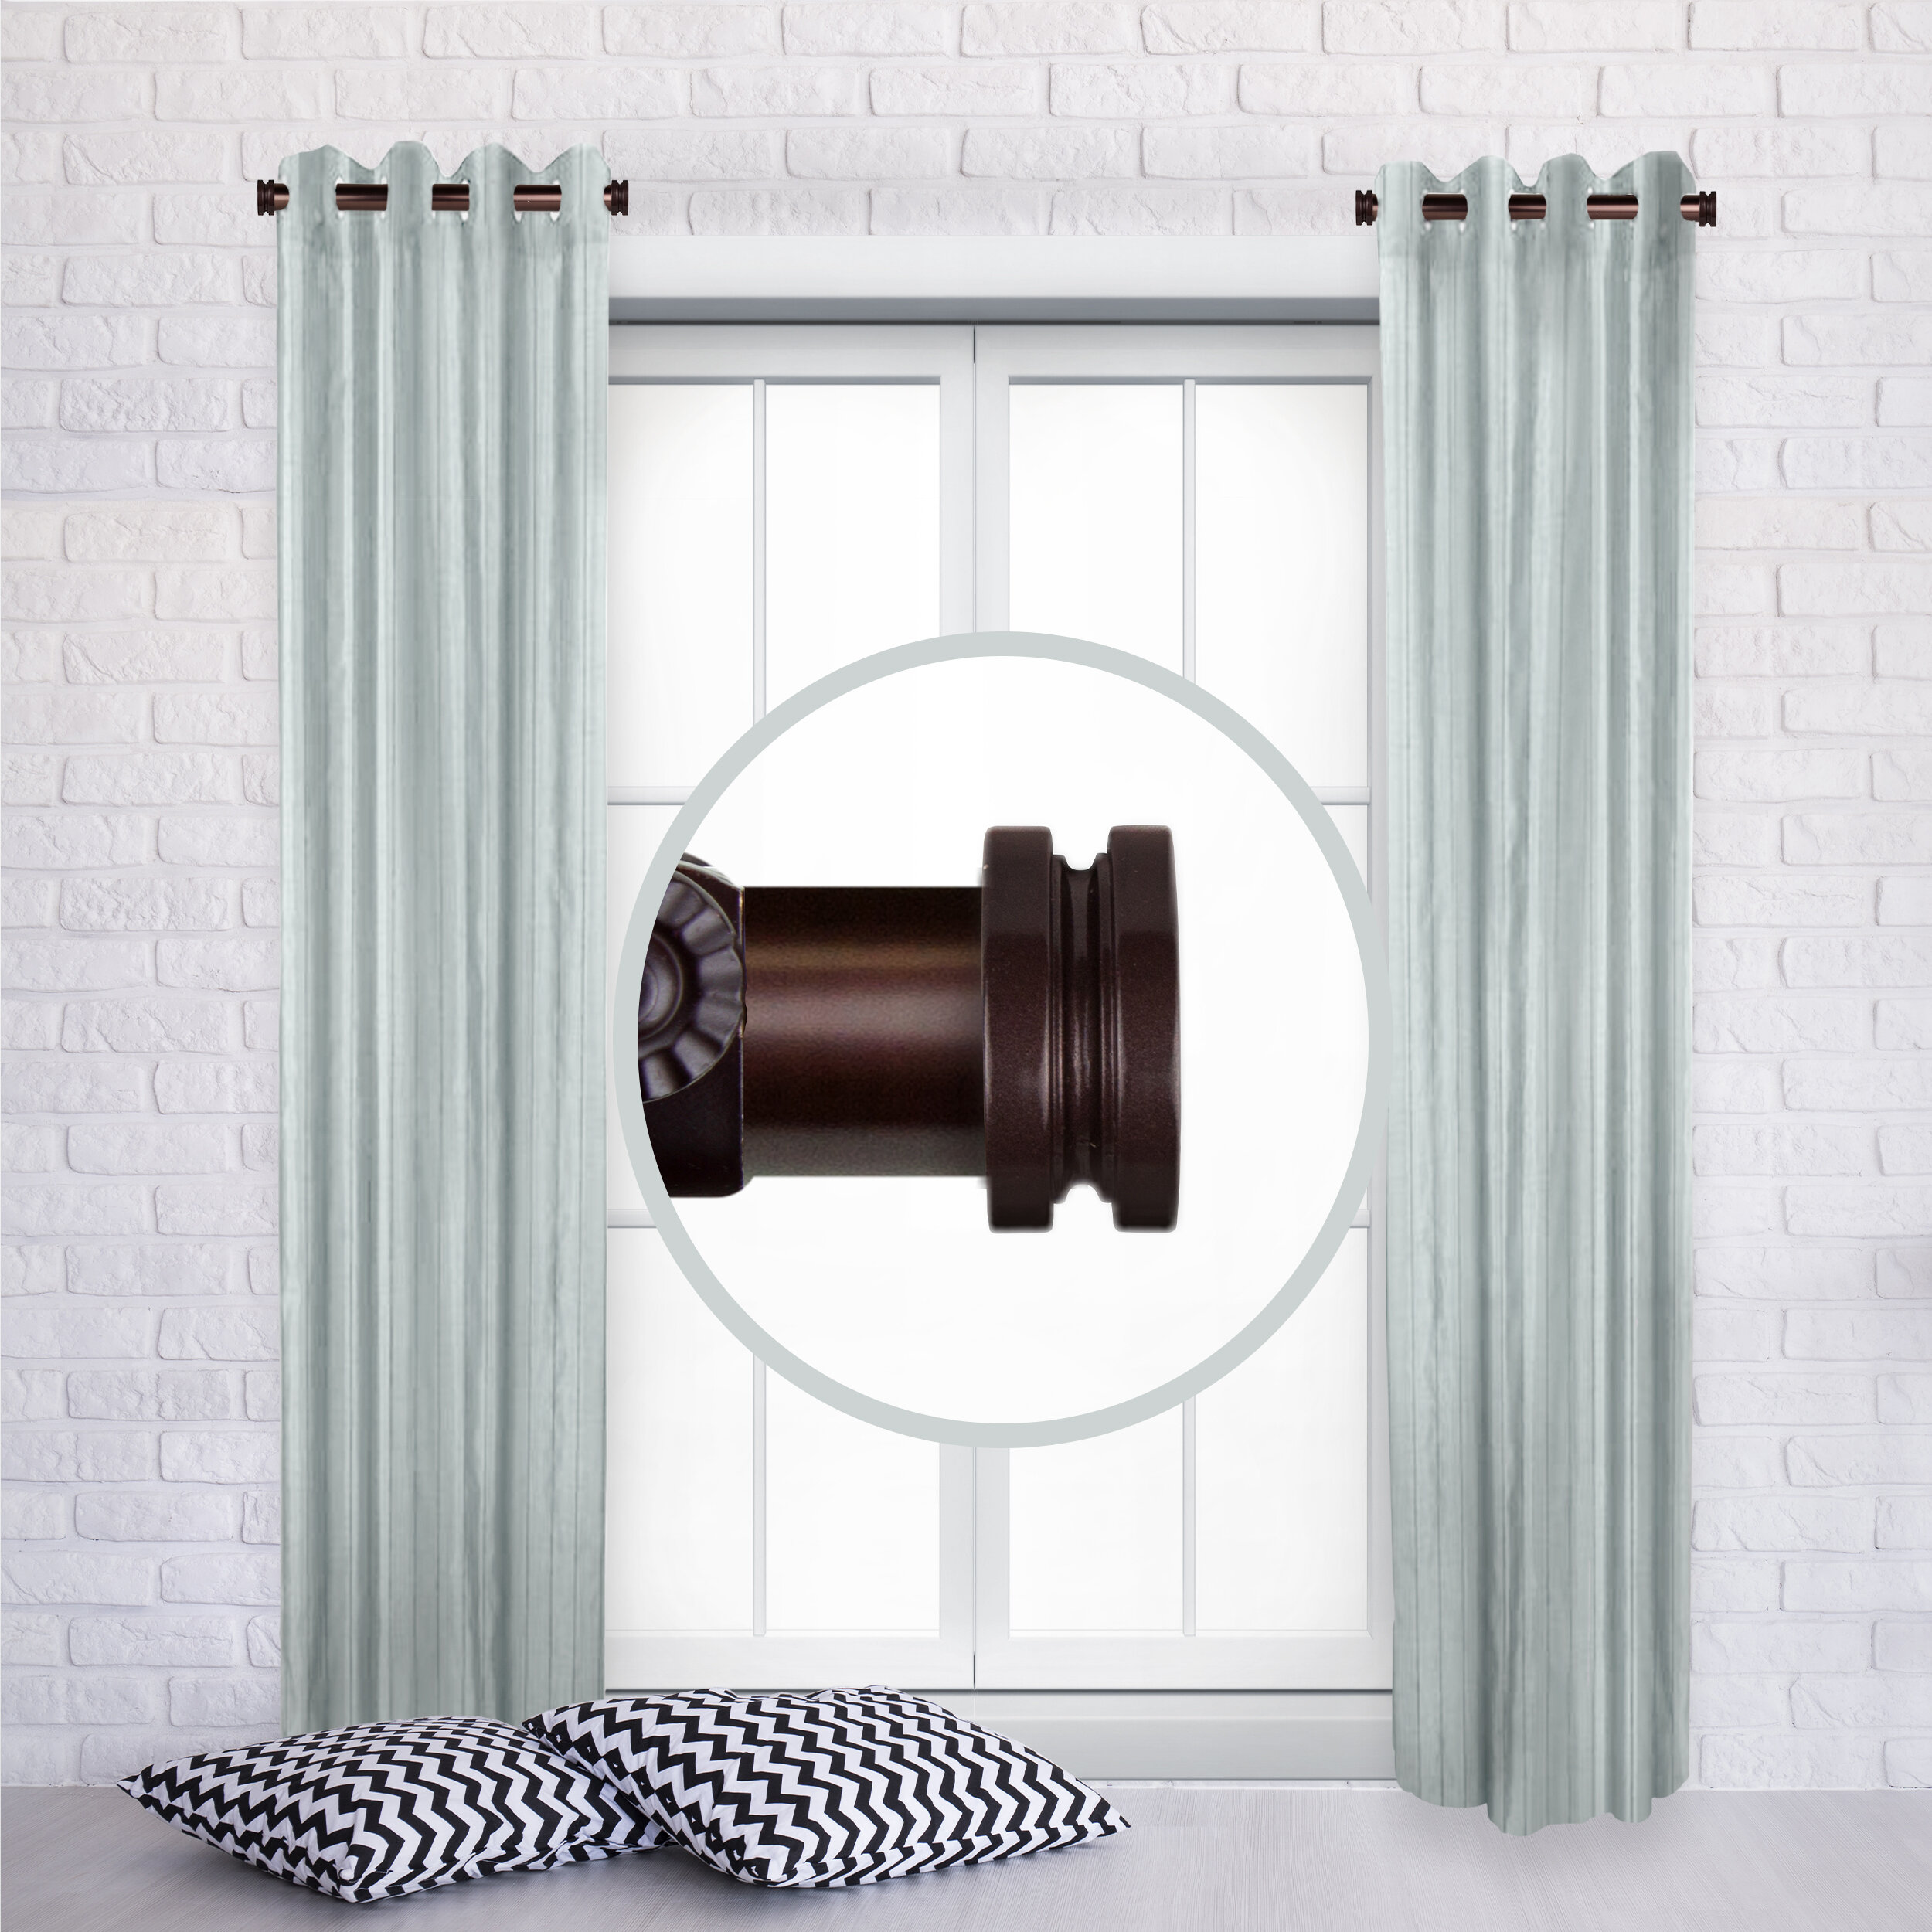 Solid Rod Curtain Hardware Accessories You Ll Love In 2021 Wayfair